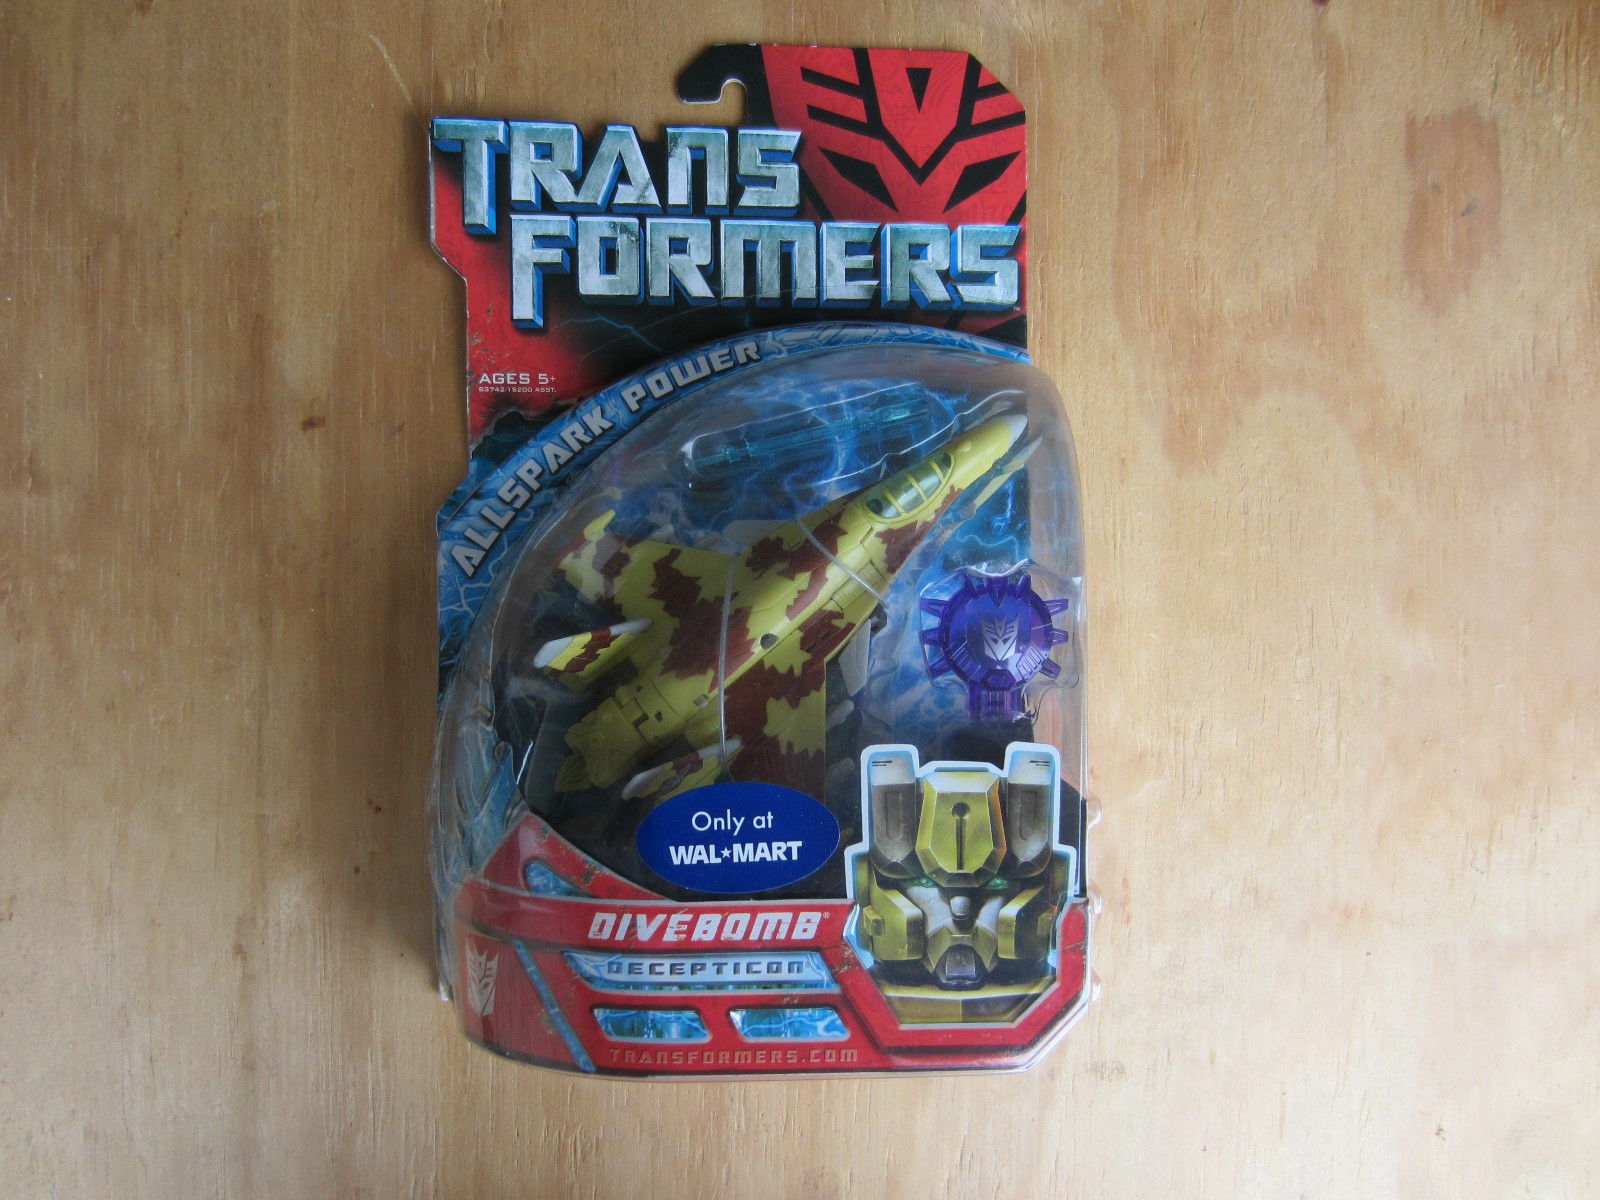 Transformers movie deluxe class wal-mart Exclusive Decepticon Divebomb 2007 new